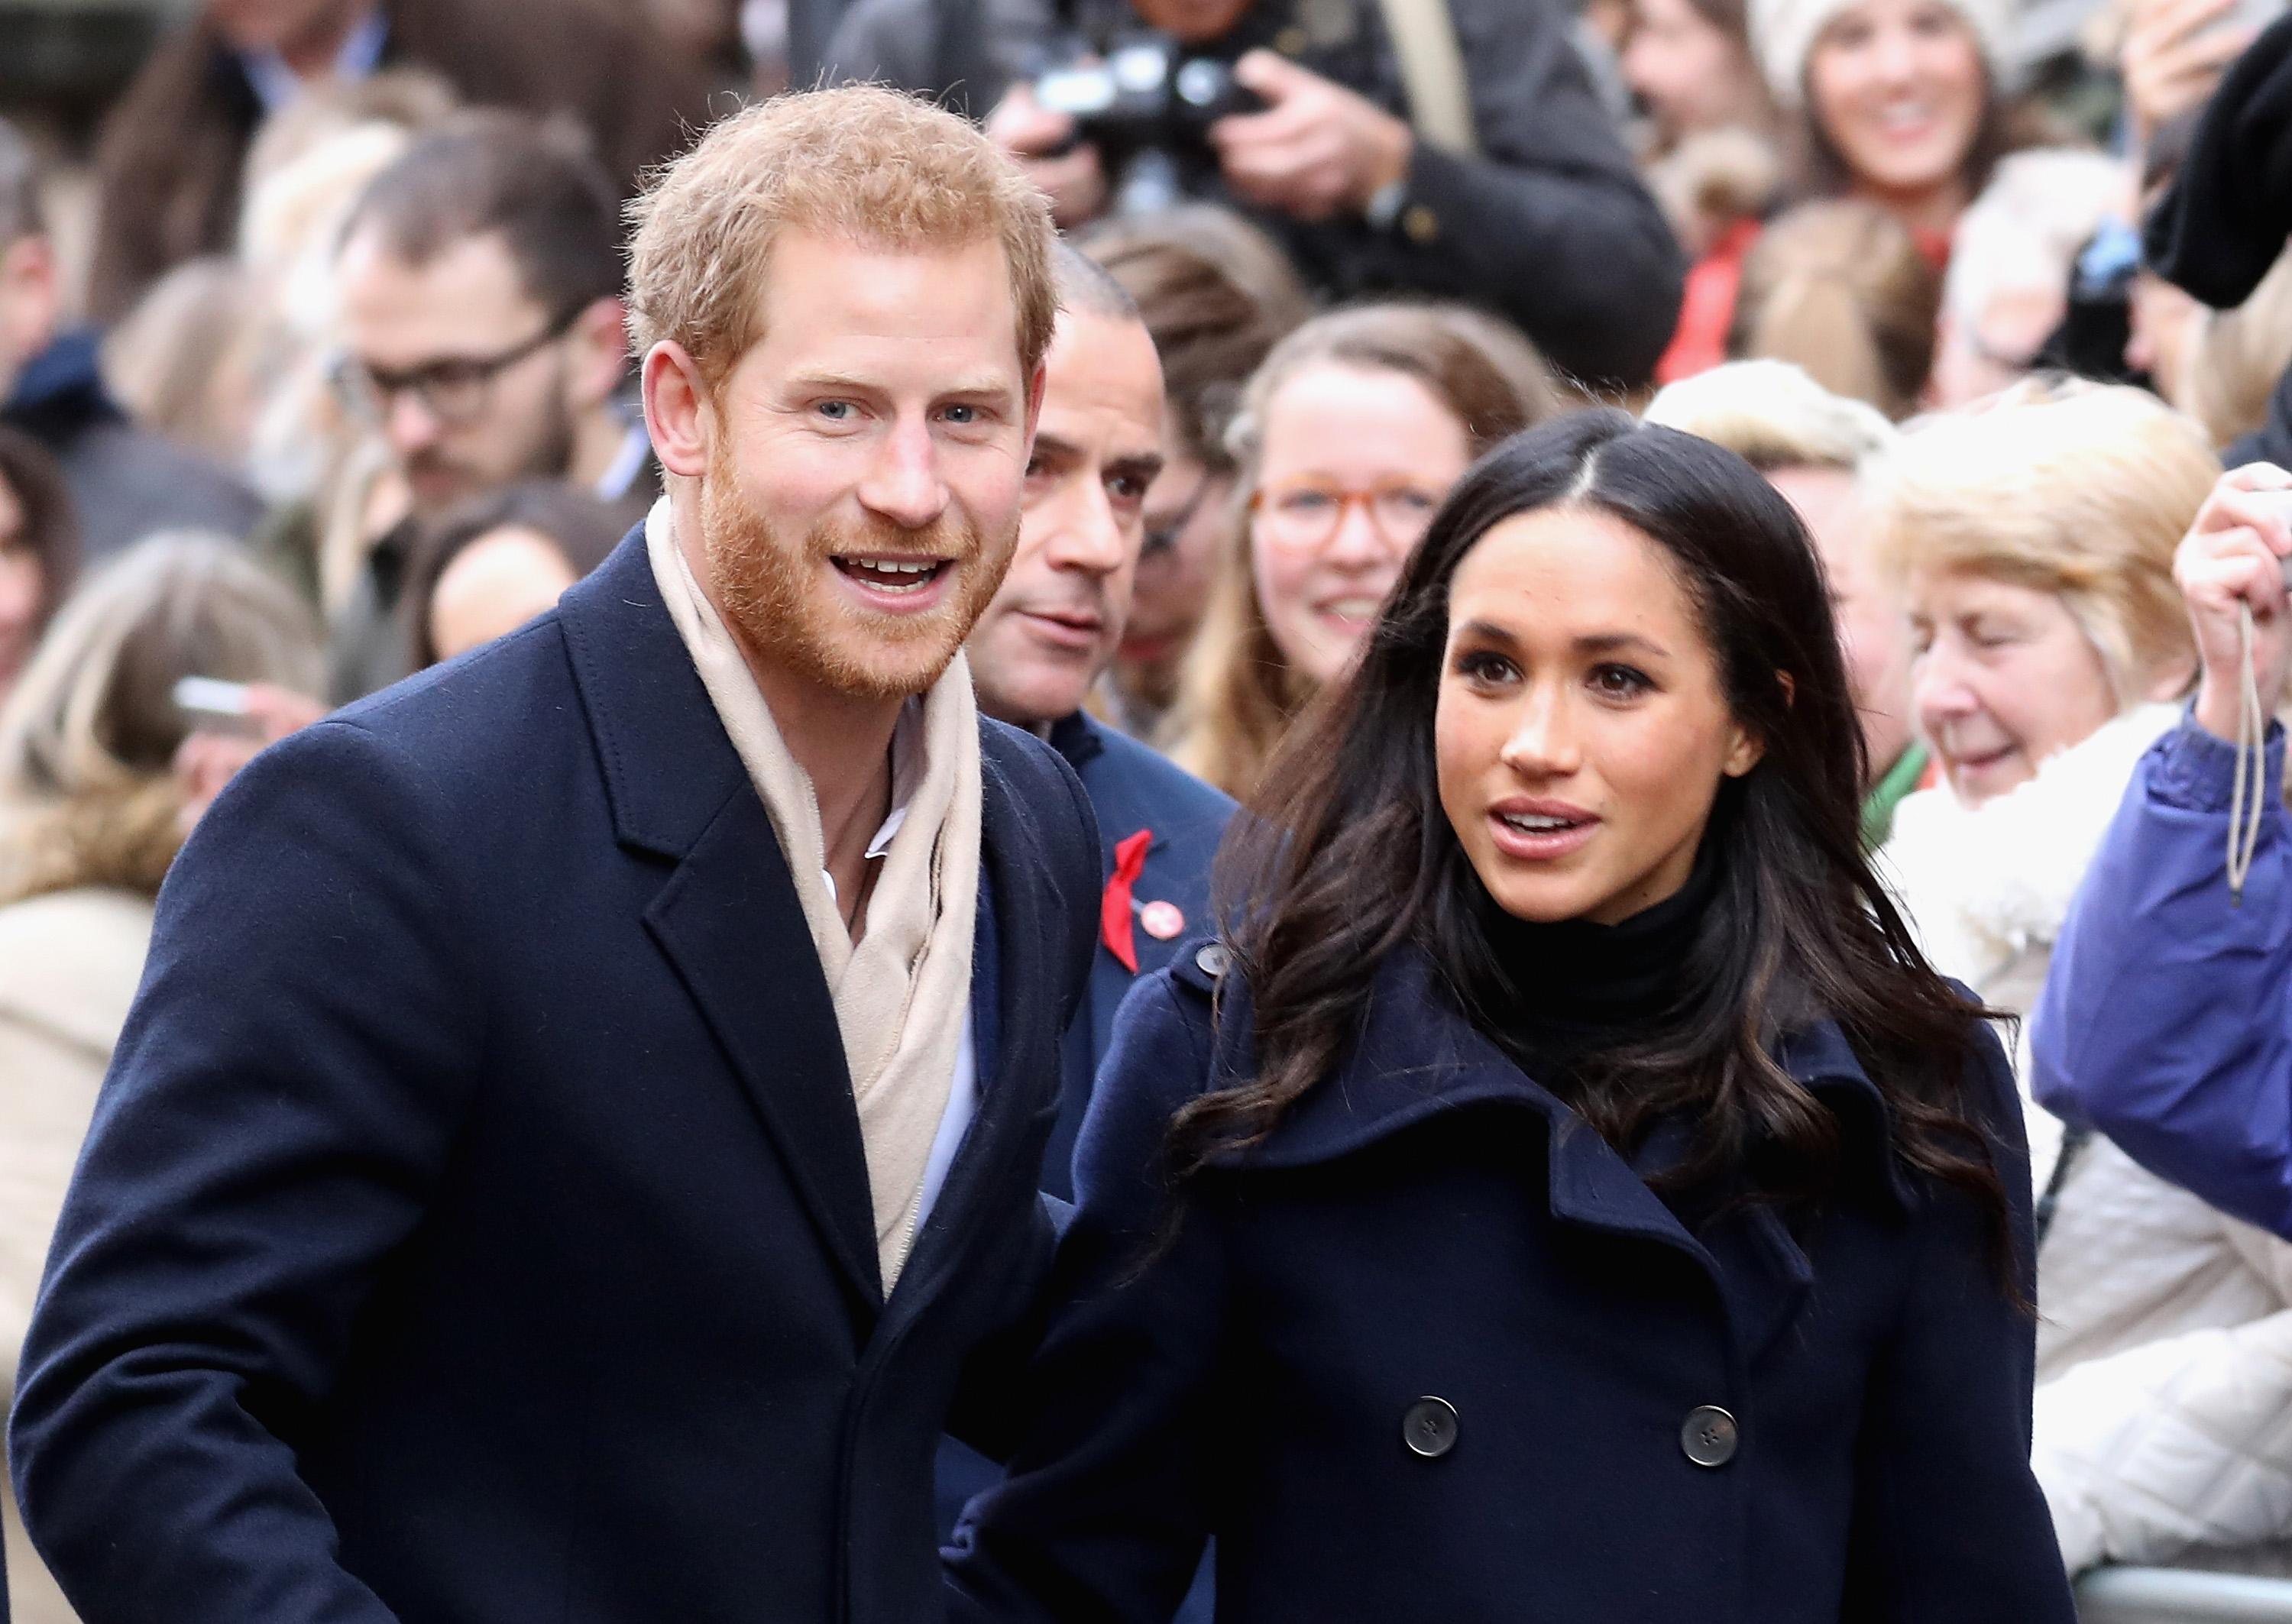 Queen Elizabeth II, Meghan Markle, royal family attend Christmas service